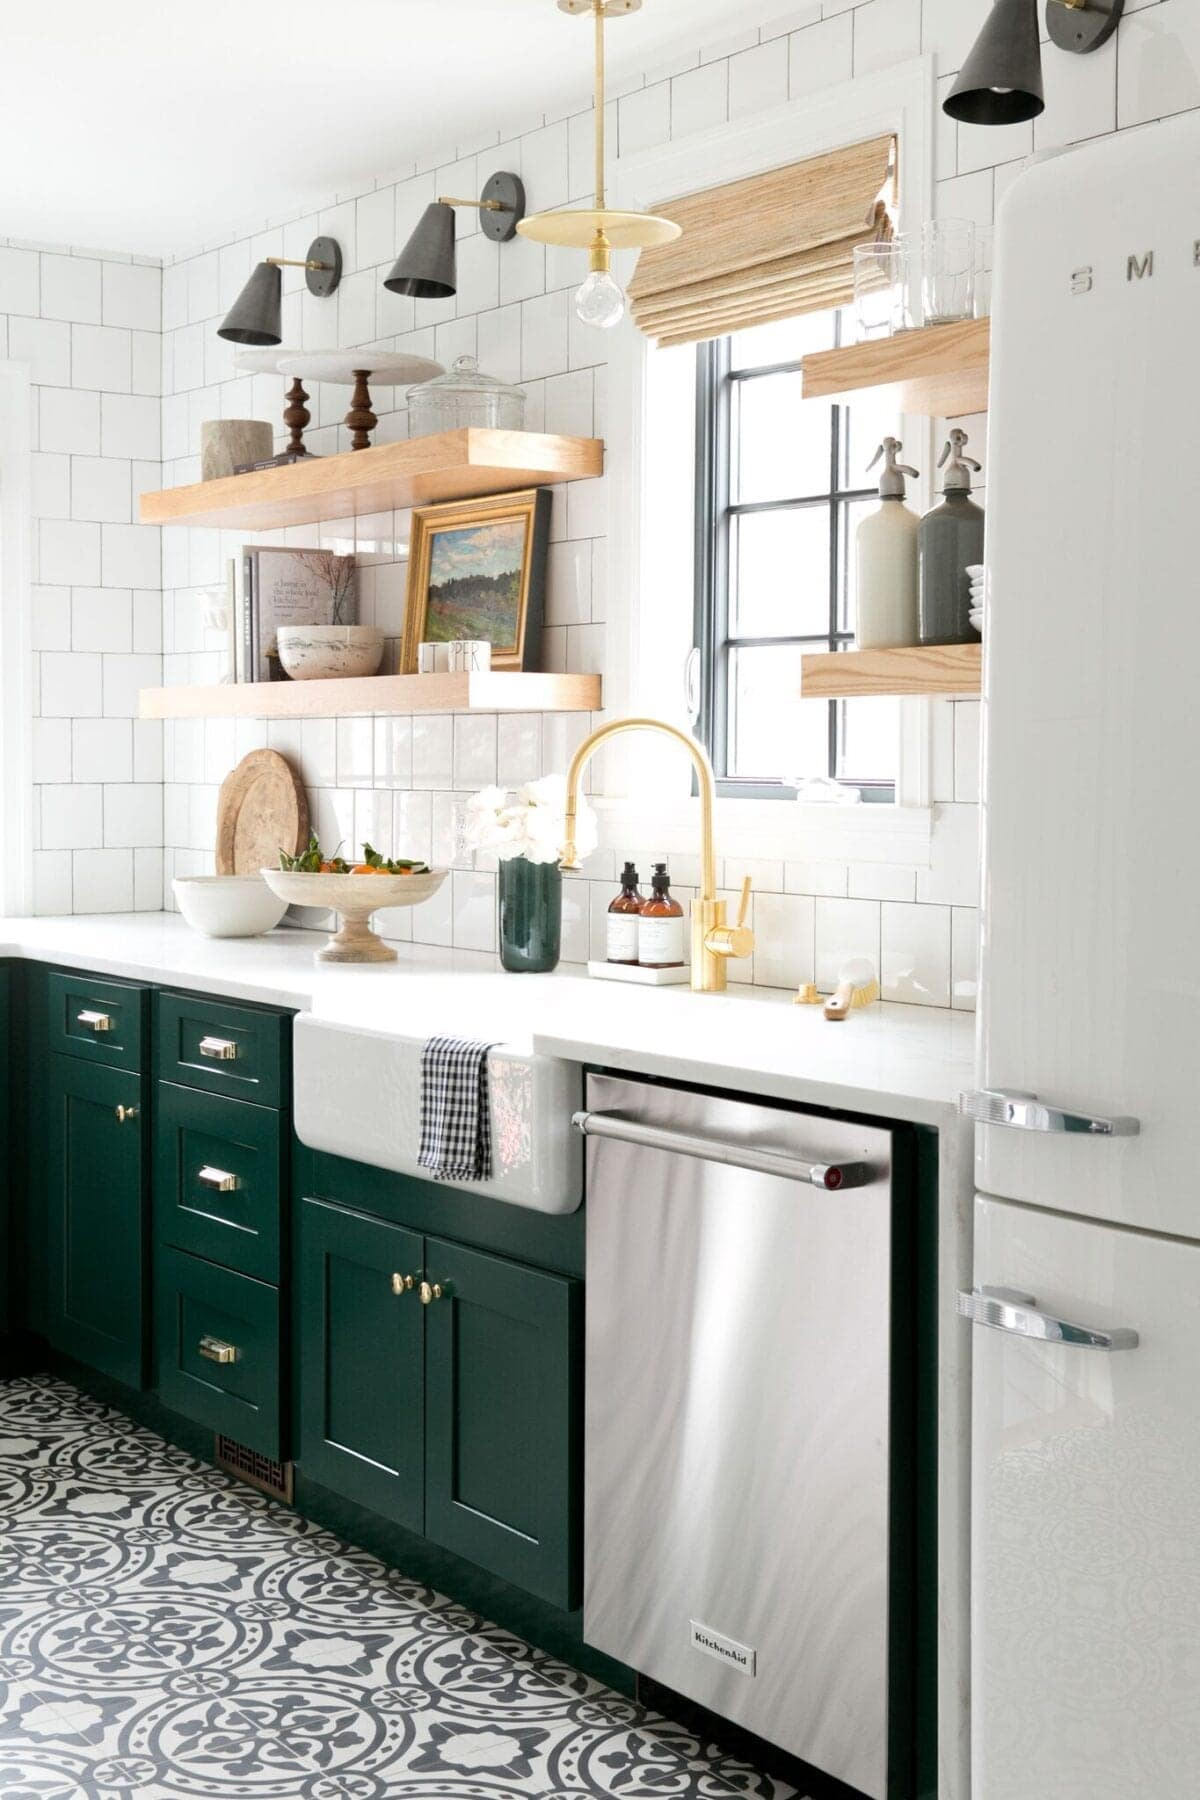 Benjamin Moore Kitchen Cabinet Colors Green Kitchen Cabinet Inspiration Bless 39er House